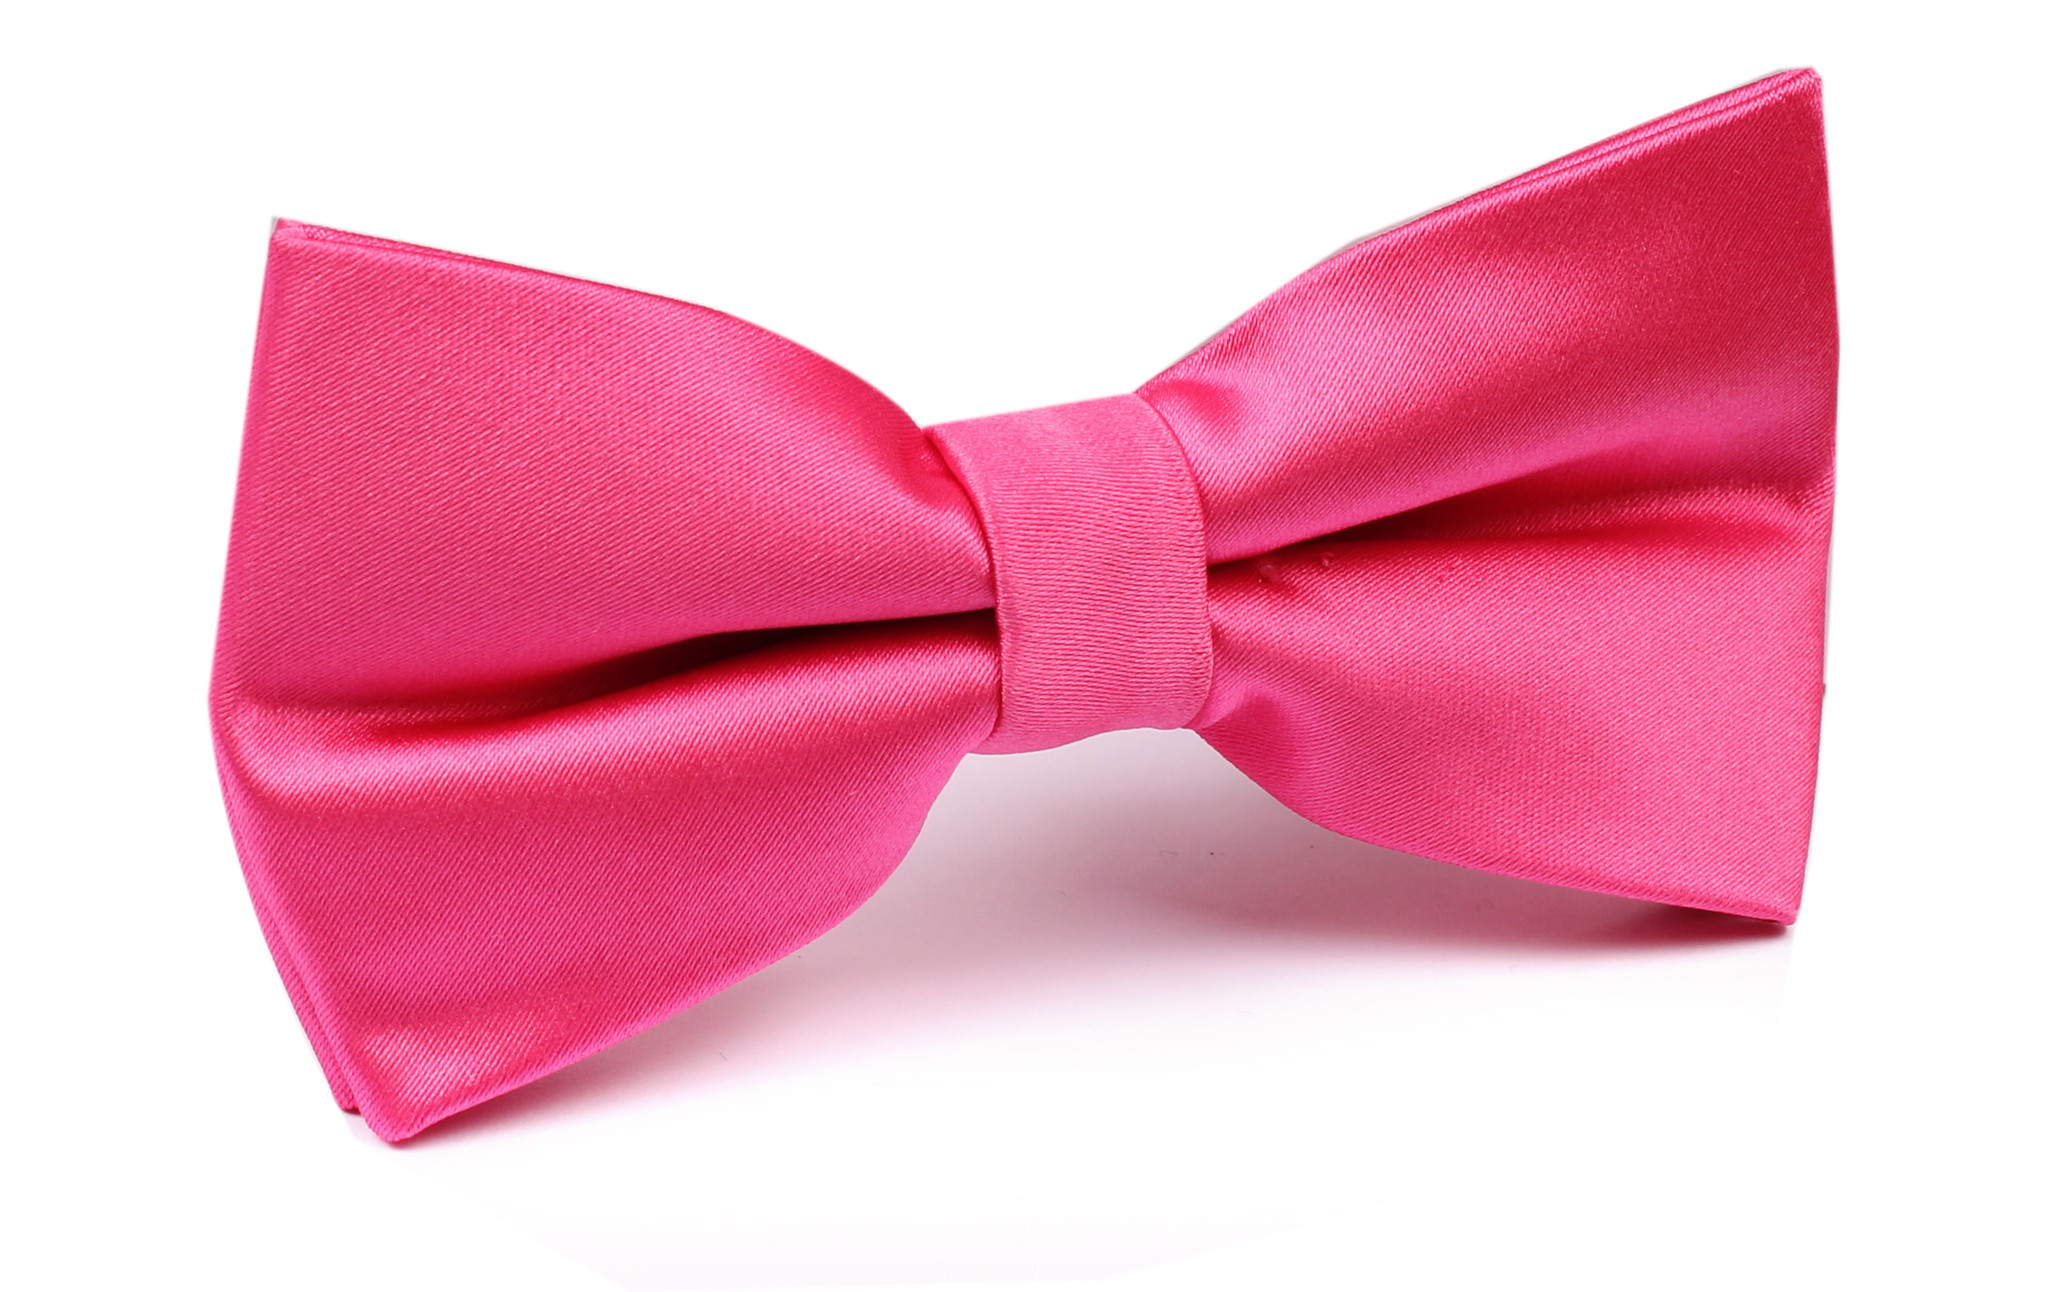 Hot Pink Bow Hot Pink Bow Tie Jpg V 1369647651